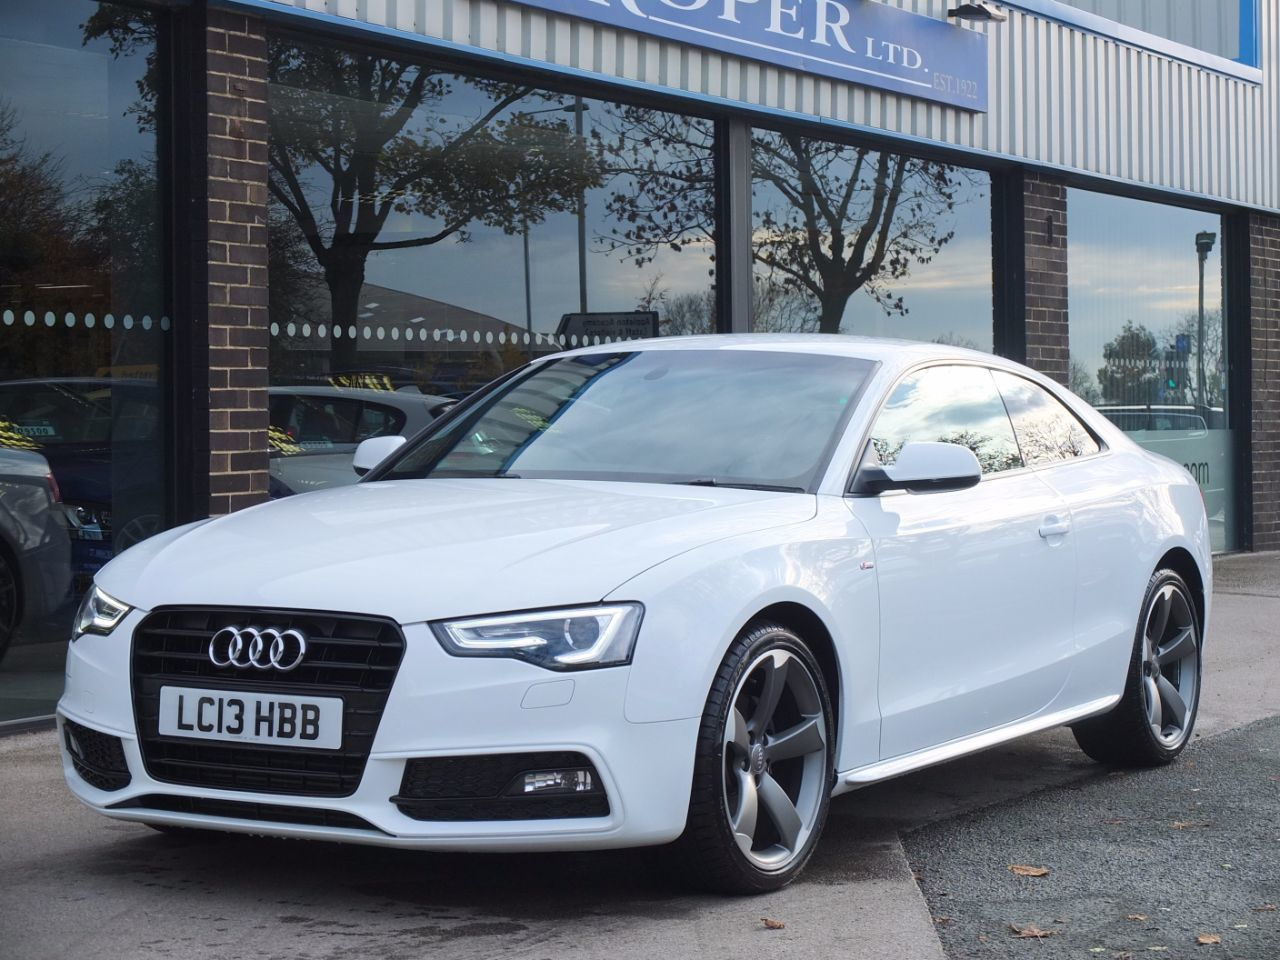 Audi A5 Coupe 2.0 TDI 177 Black Edition Multitronic Coupe Diesel Ibis WhiteAudi A5 Coupe 2.0 TDI 177 Black Edition Multitronic Coupe Diesel Ibis White at fa Roper Ltd Bradford